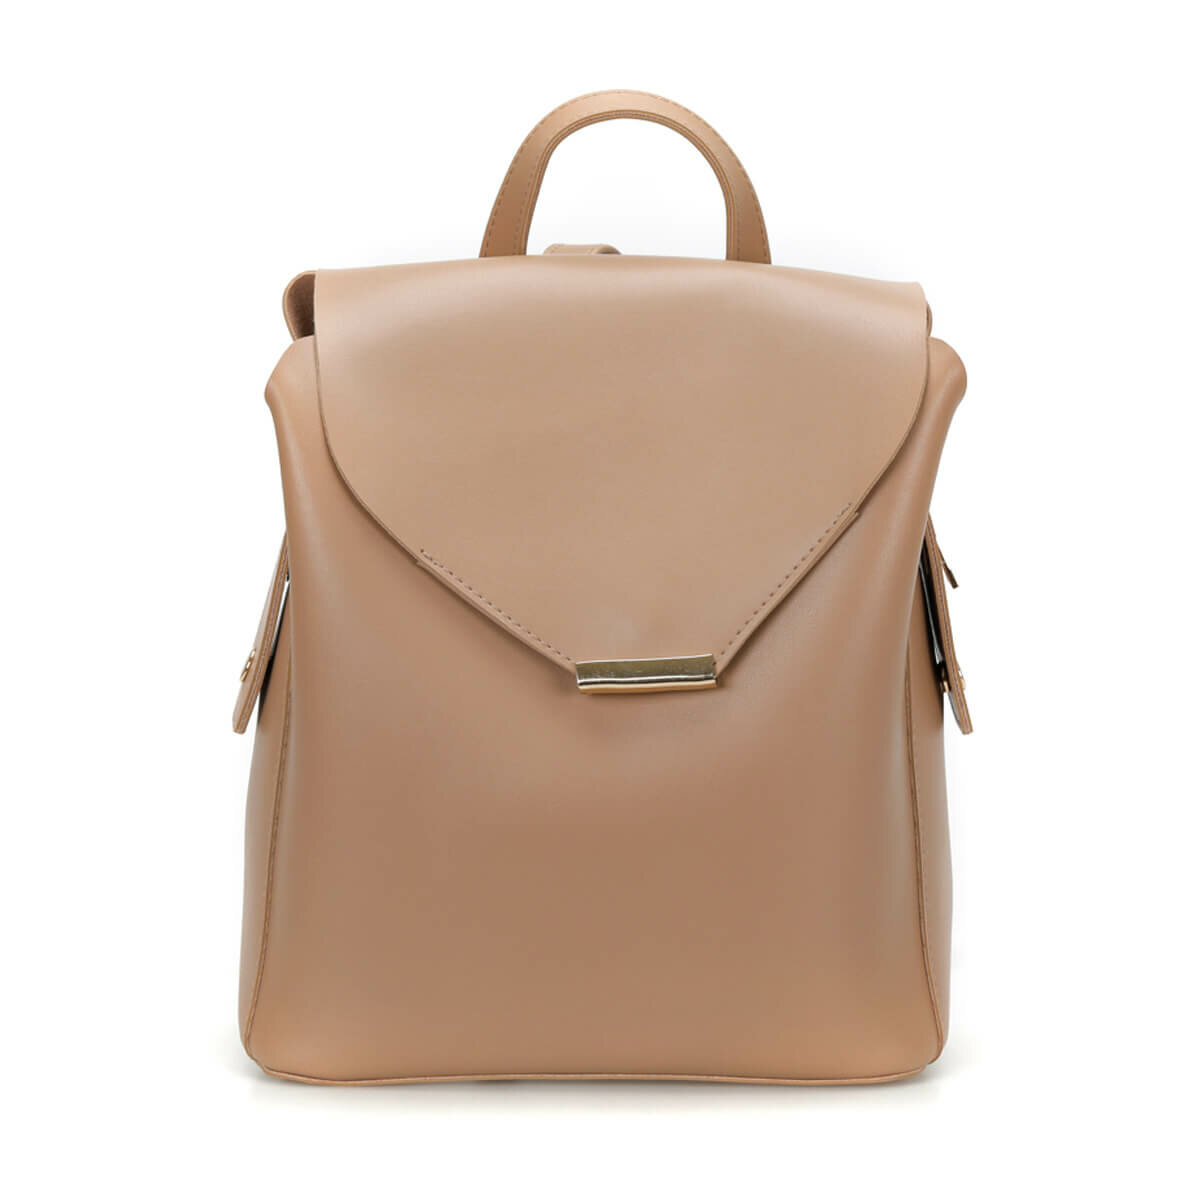 FLO WGLR1109 NUDE Women Backpack BUTIGO